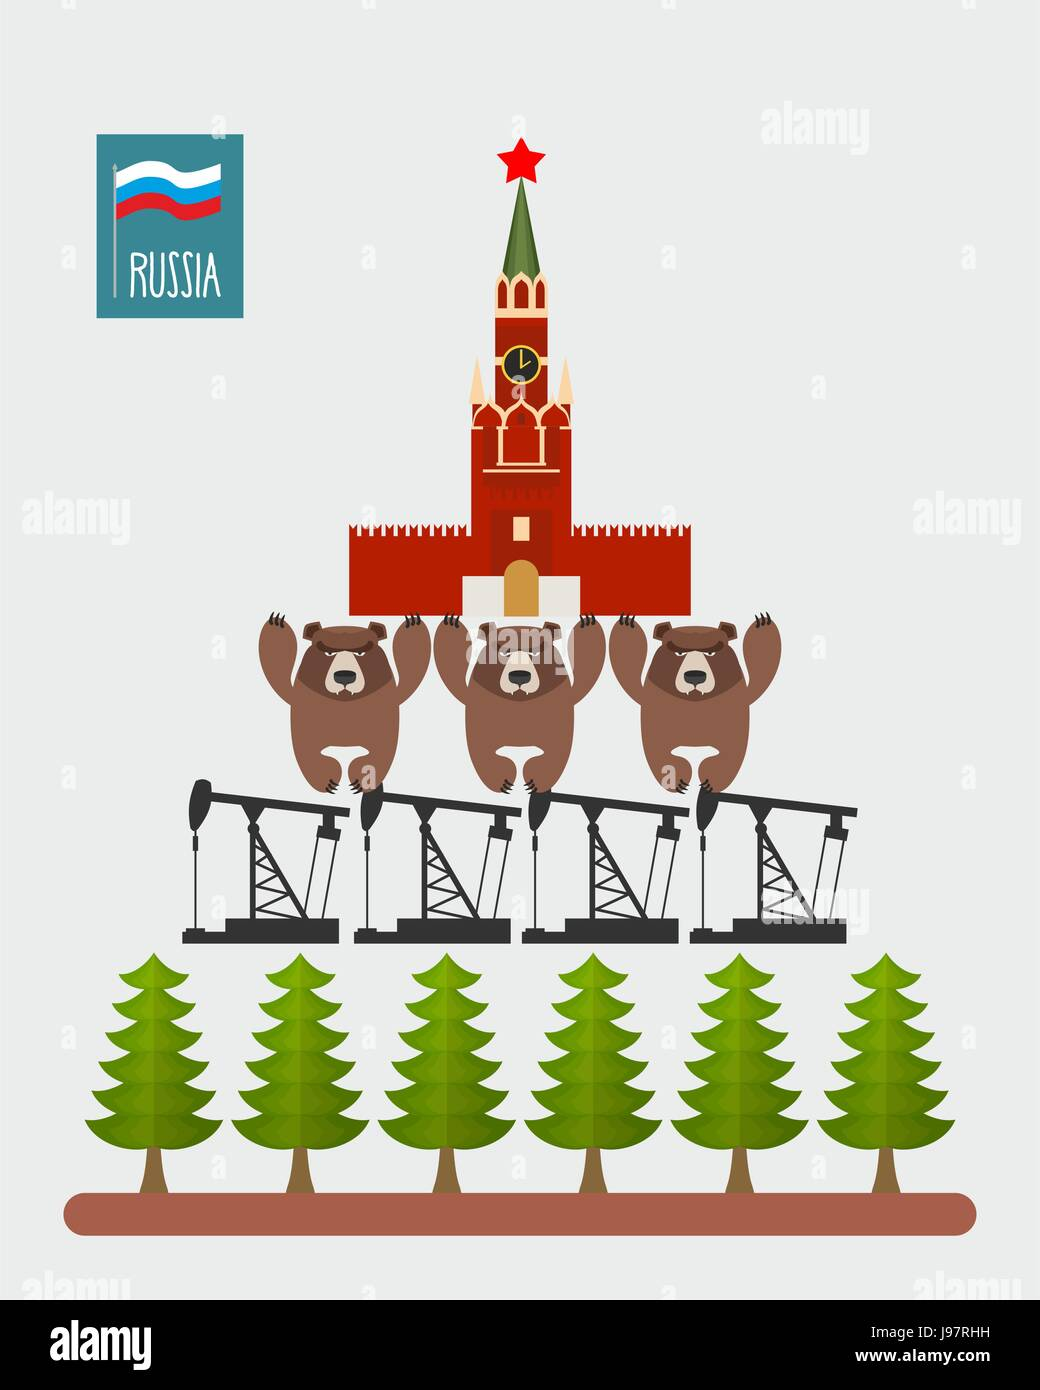 Structure Russia. Moscow Kremlin is based on  three bears. Bears stand on oil rigs. Oil pumps are on forest. Infographic - Stock Vector